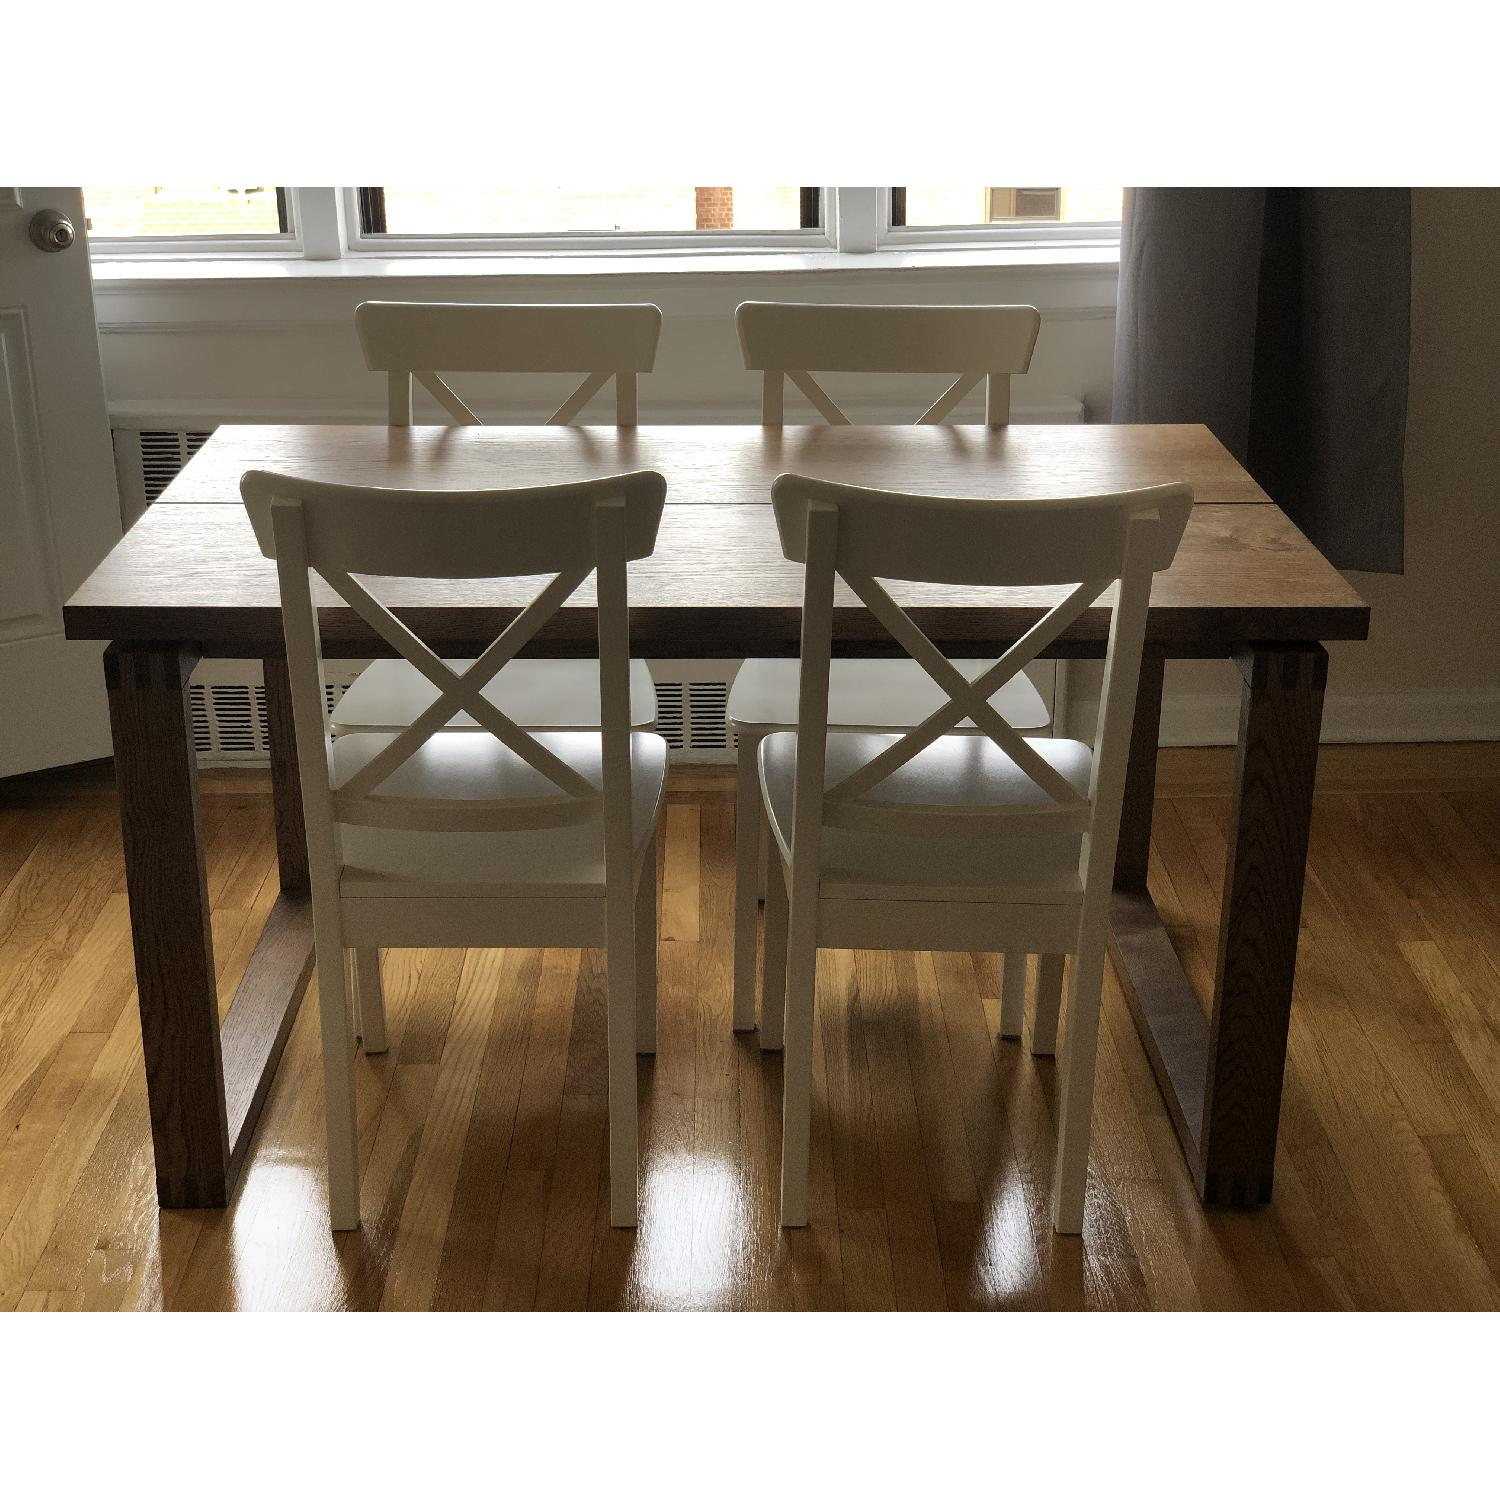 Ikea Ingolf White Dining Chairs - image-6